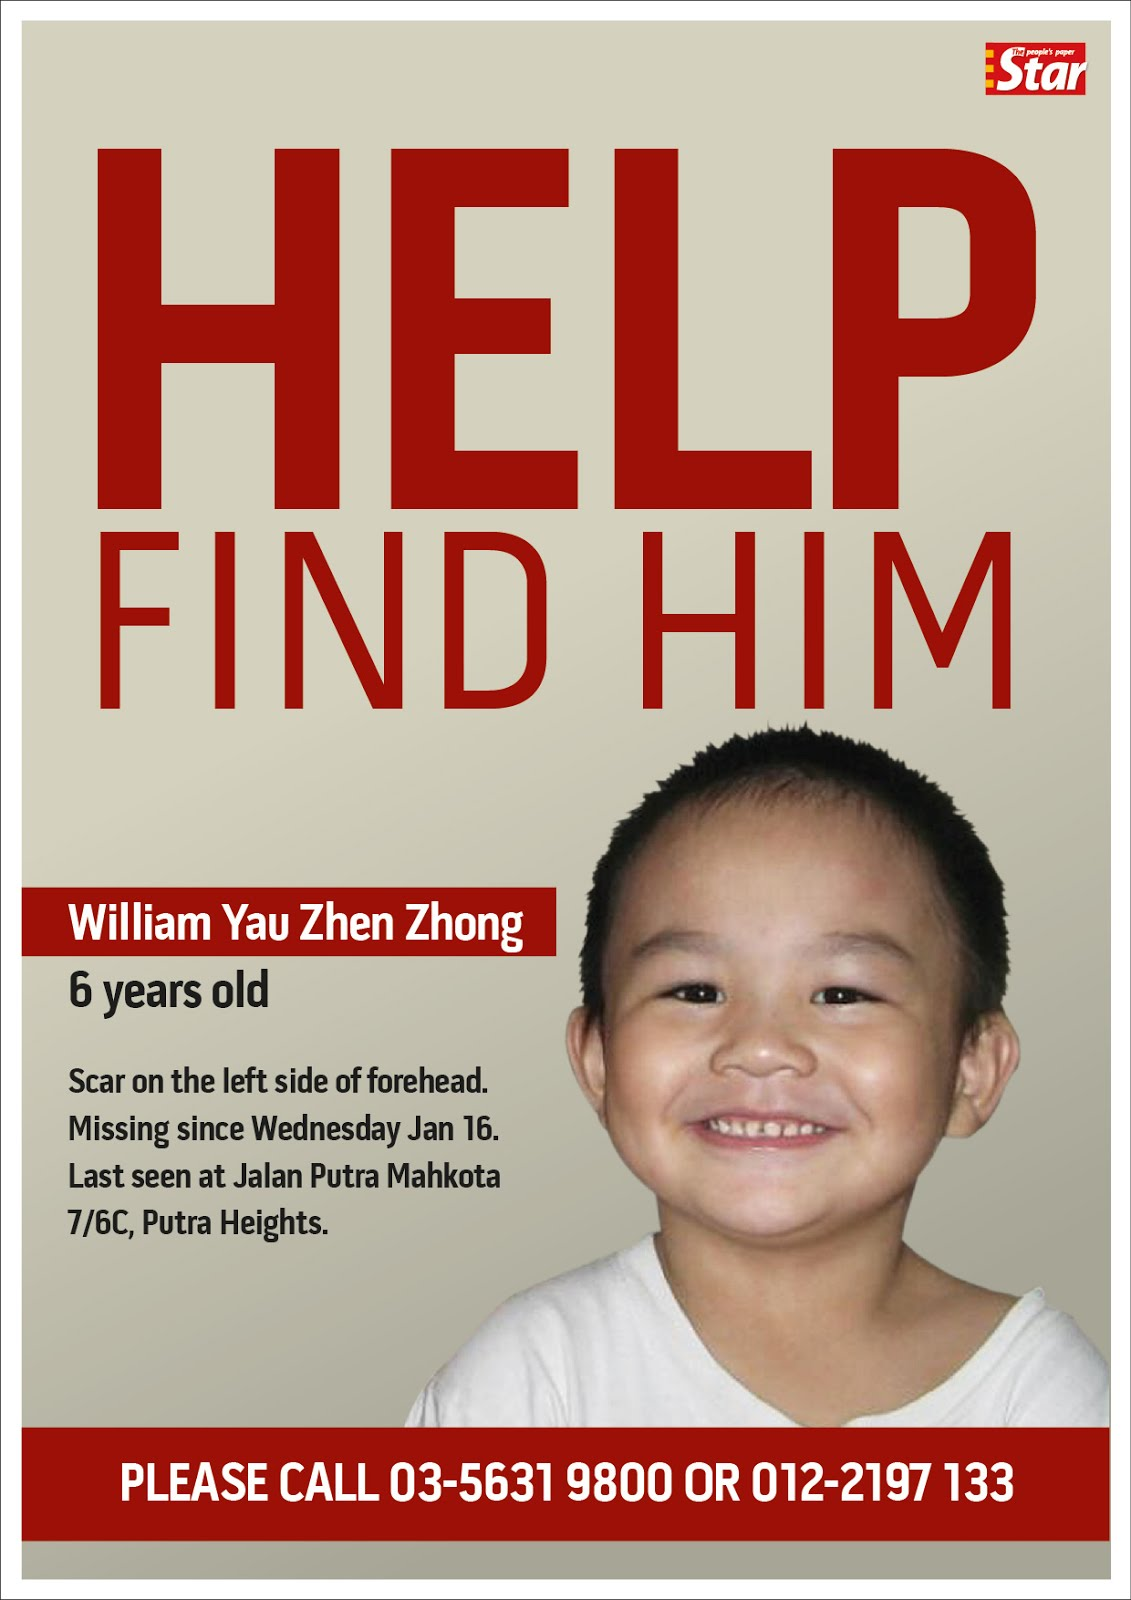 Missing Children Poster Template Malaysian hollywood 2.0: january 2013